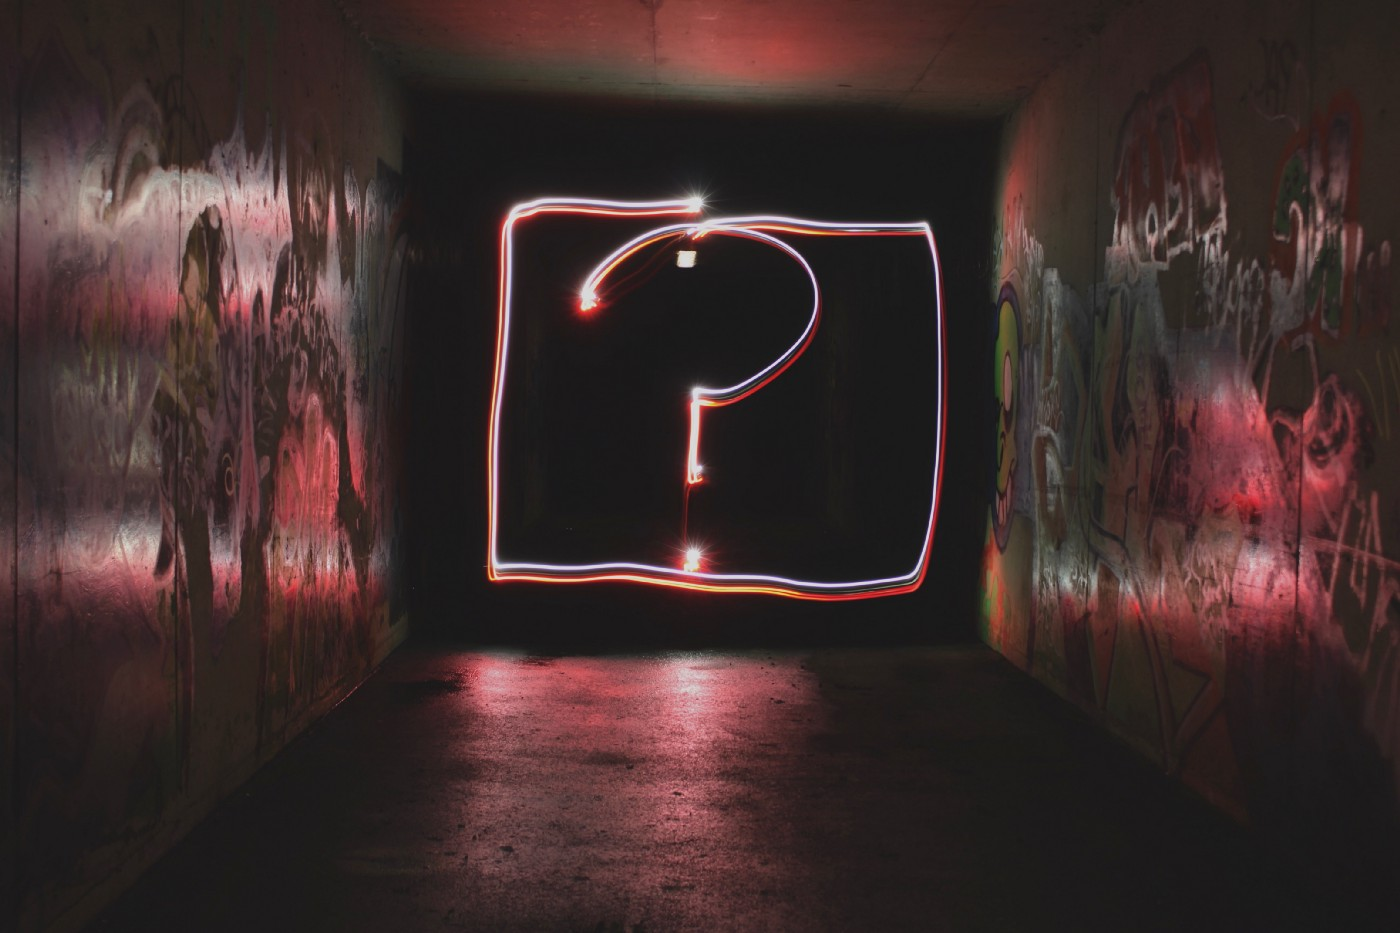 Neon question mark at the end of a dark hallway